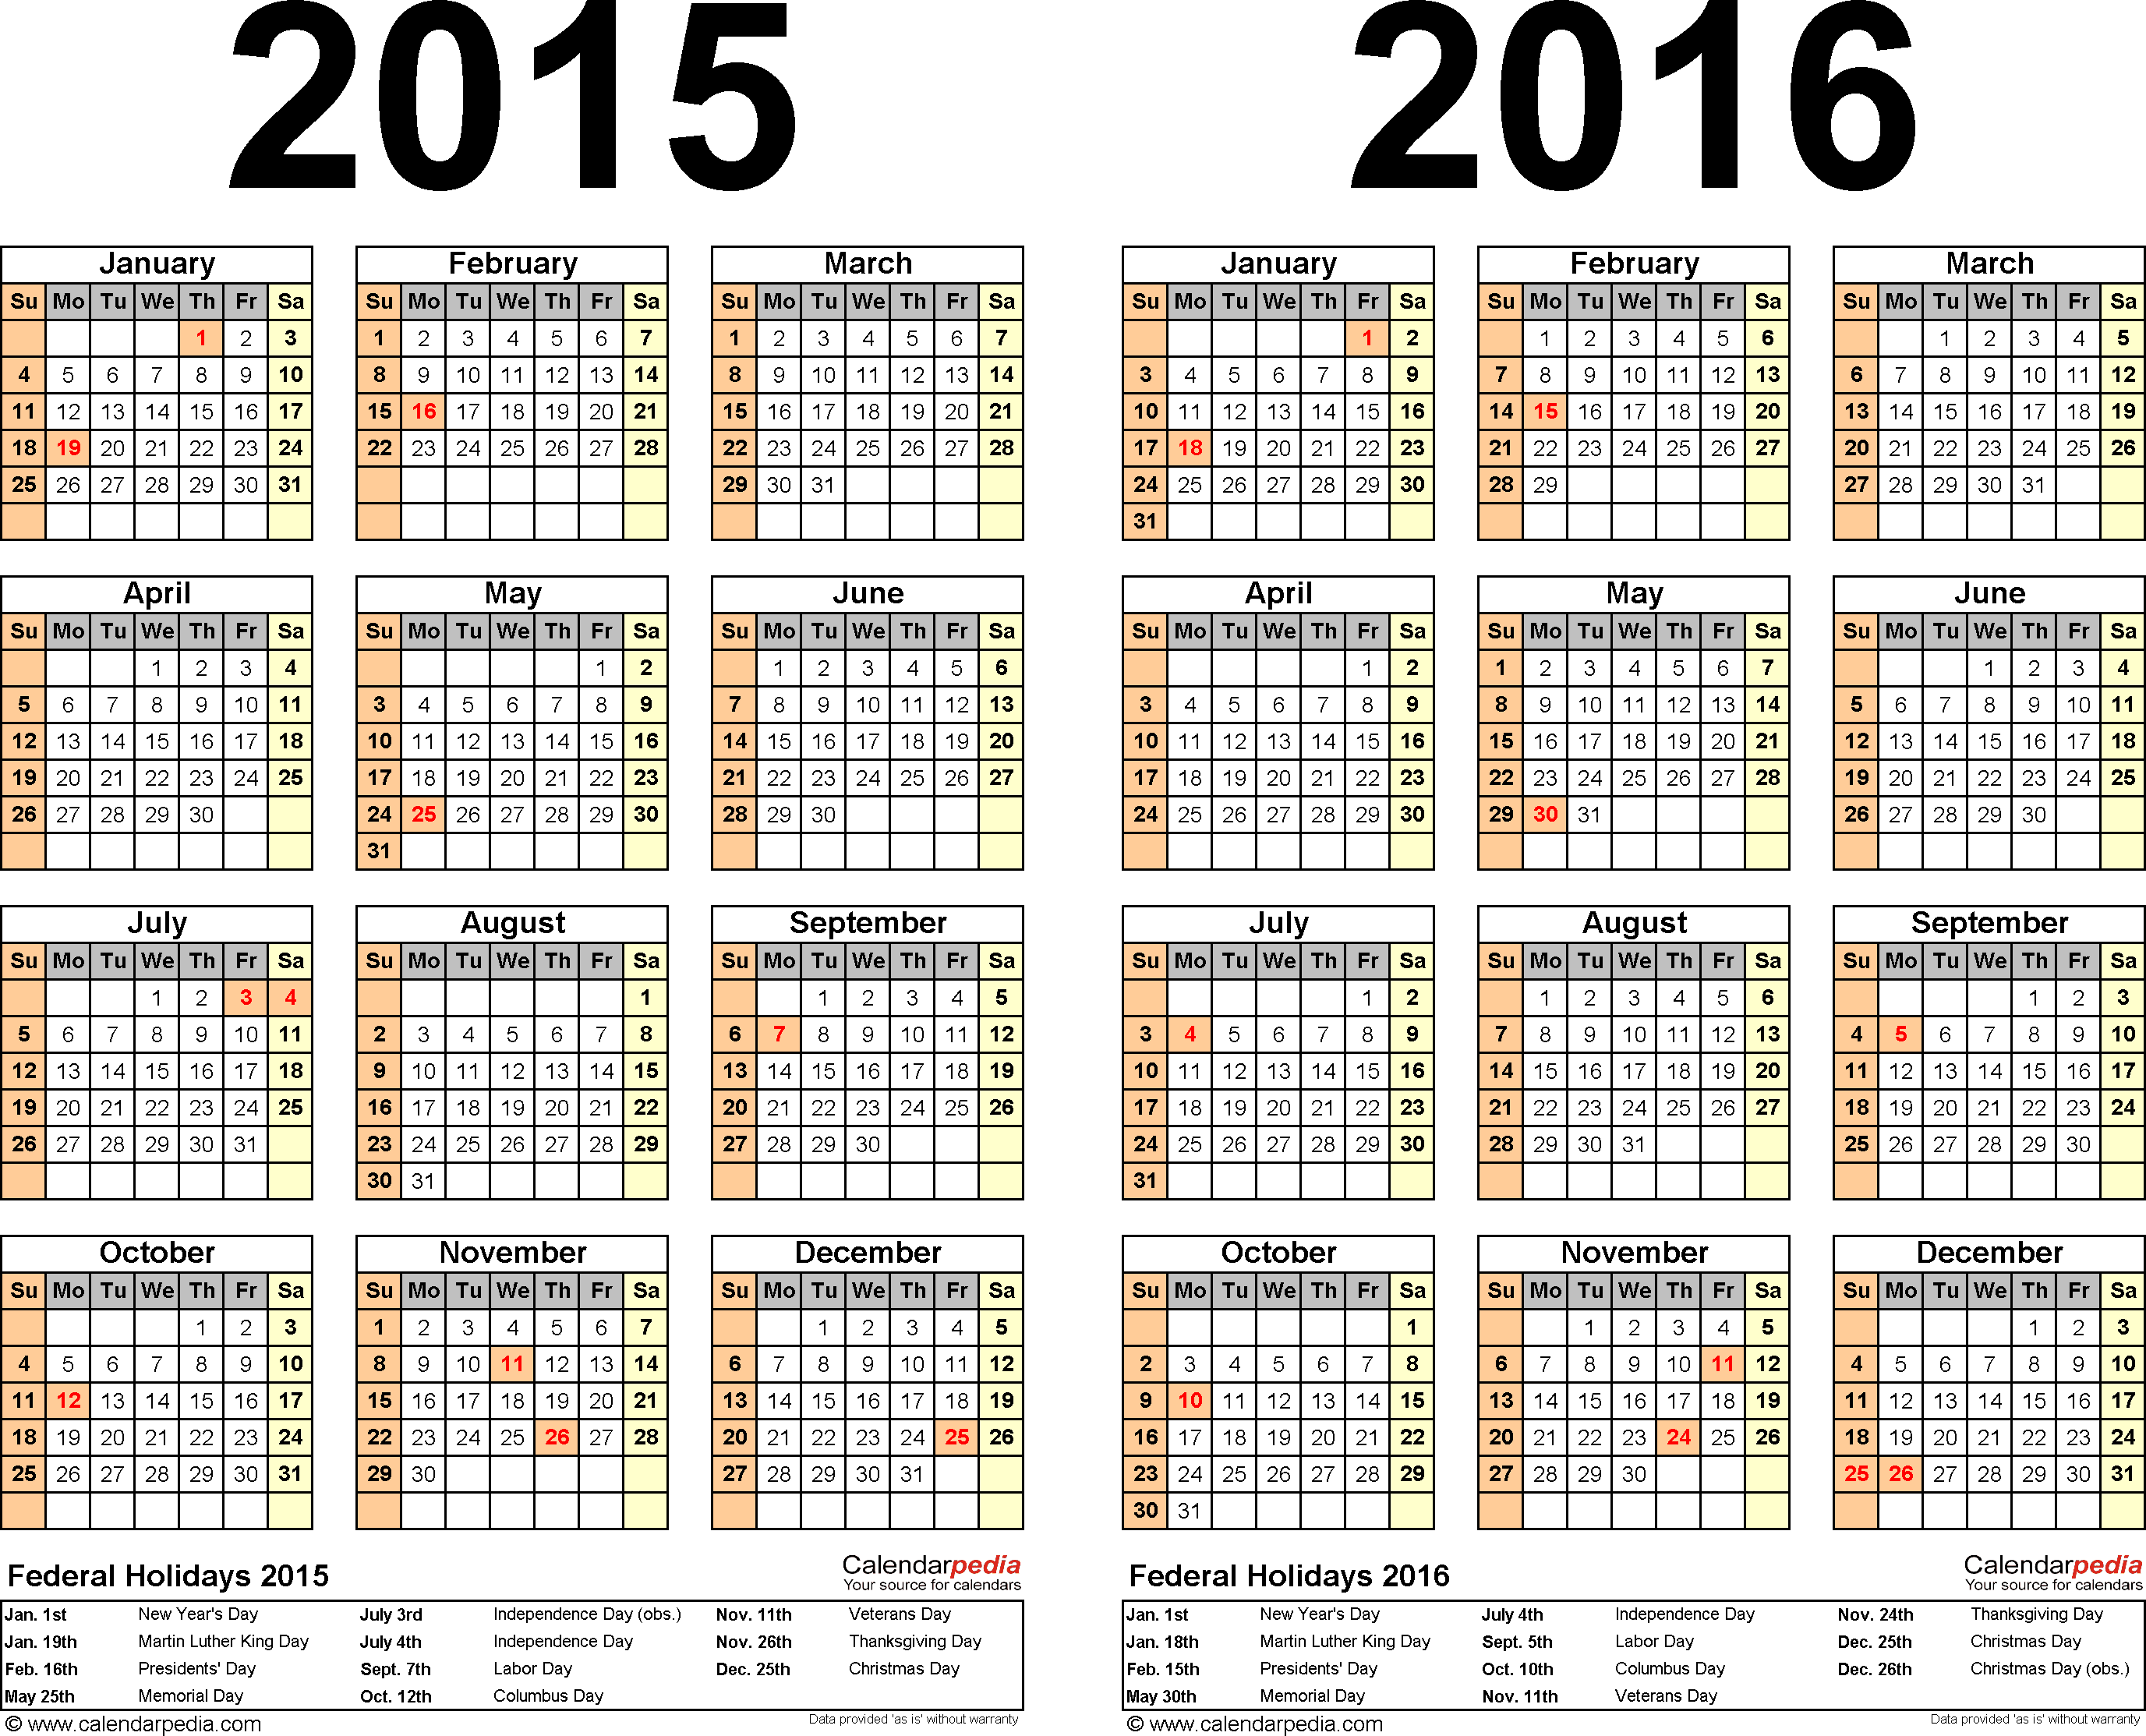 Download Template 3: PDF template for two year calendar 2015/2016 (landscape orientation, 1 page, years side by side)